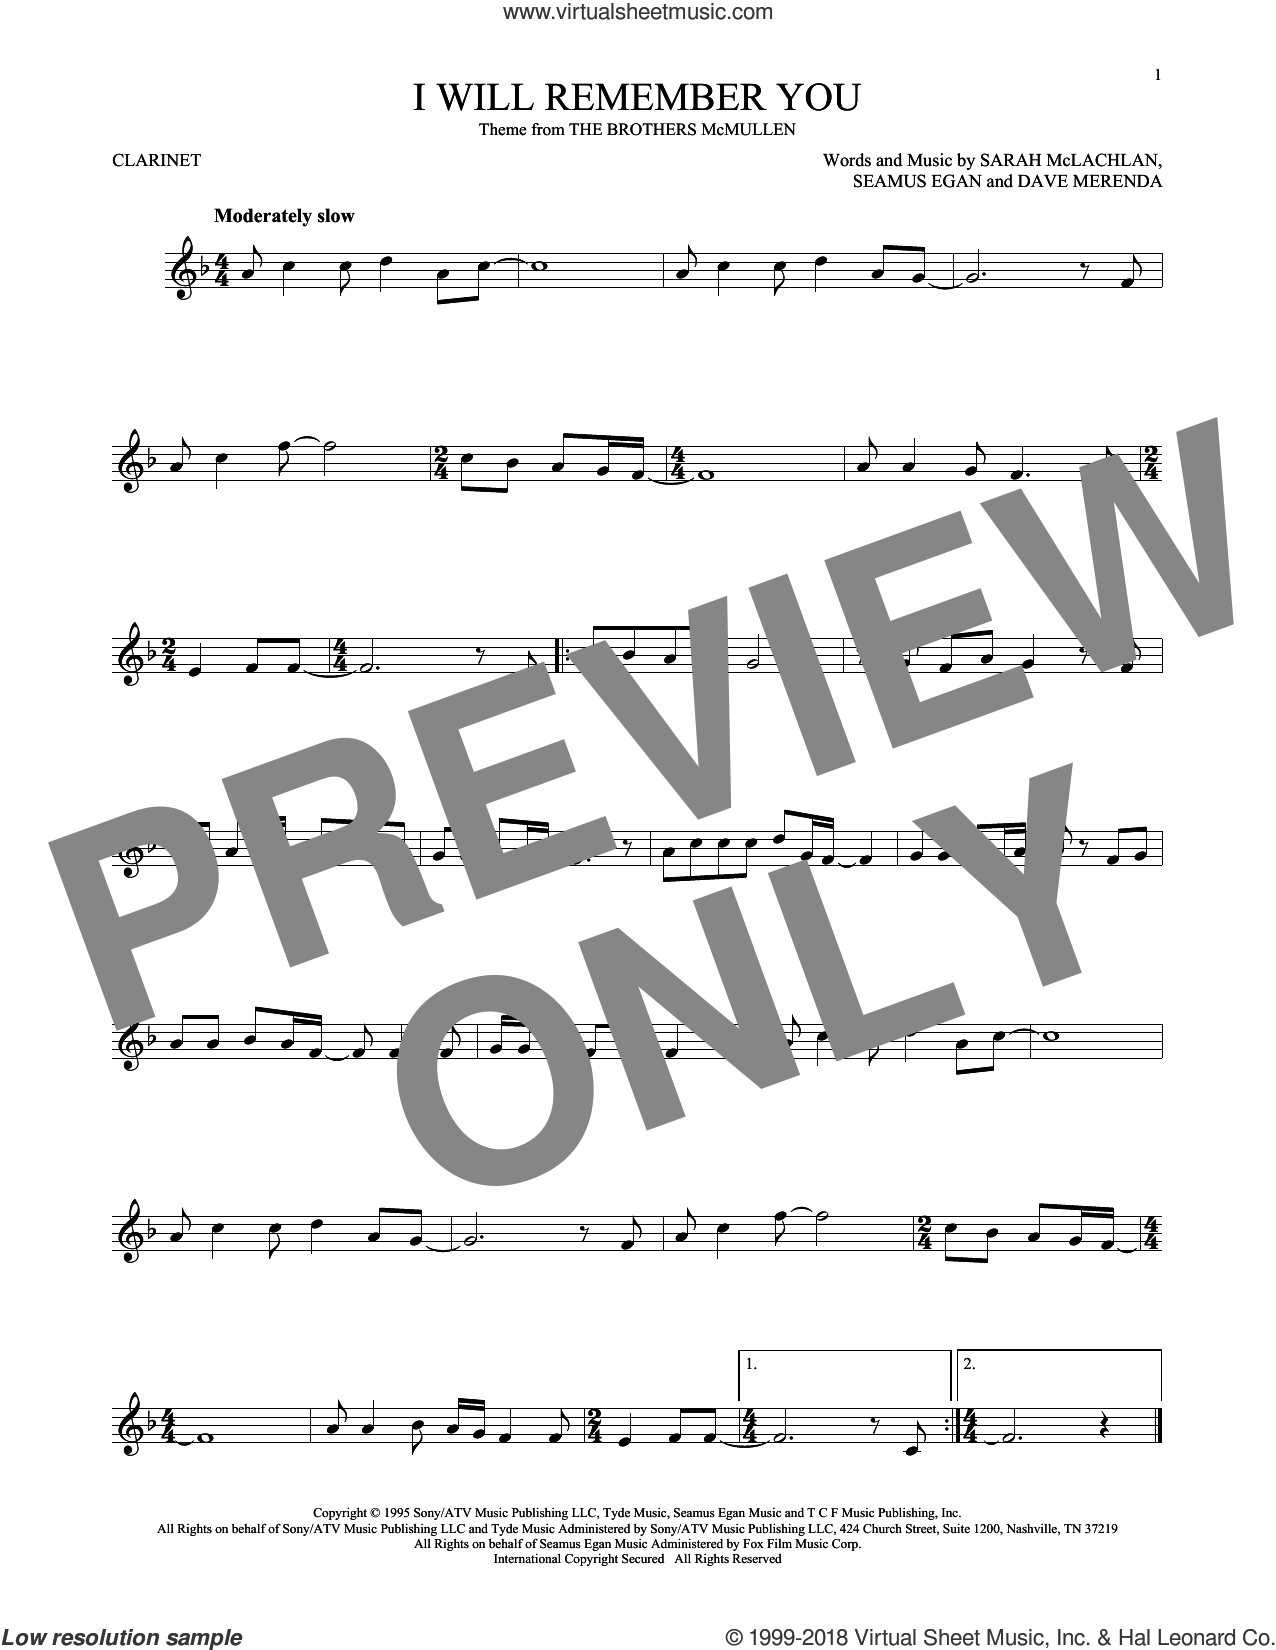 I Will Remember You sheet music for clarinet solo by Sarah McLachlan, Dave Merenda and Seamus Egan, intermediate skill level